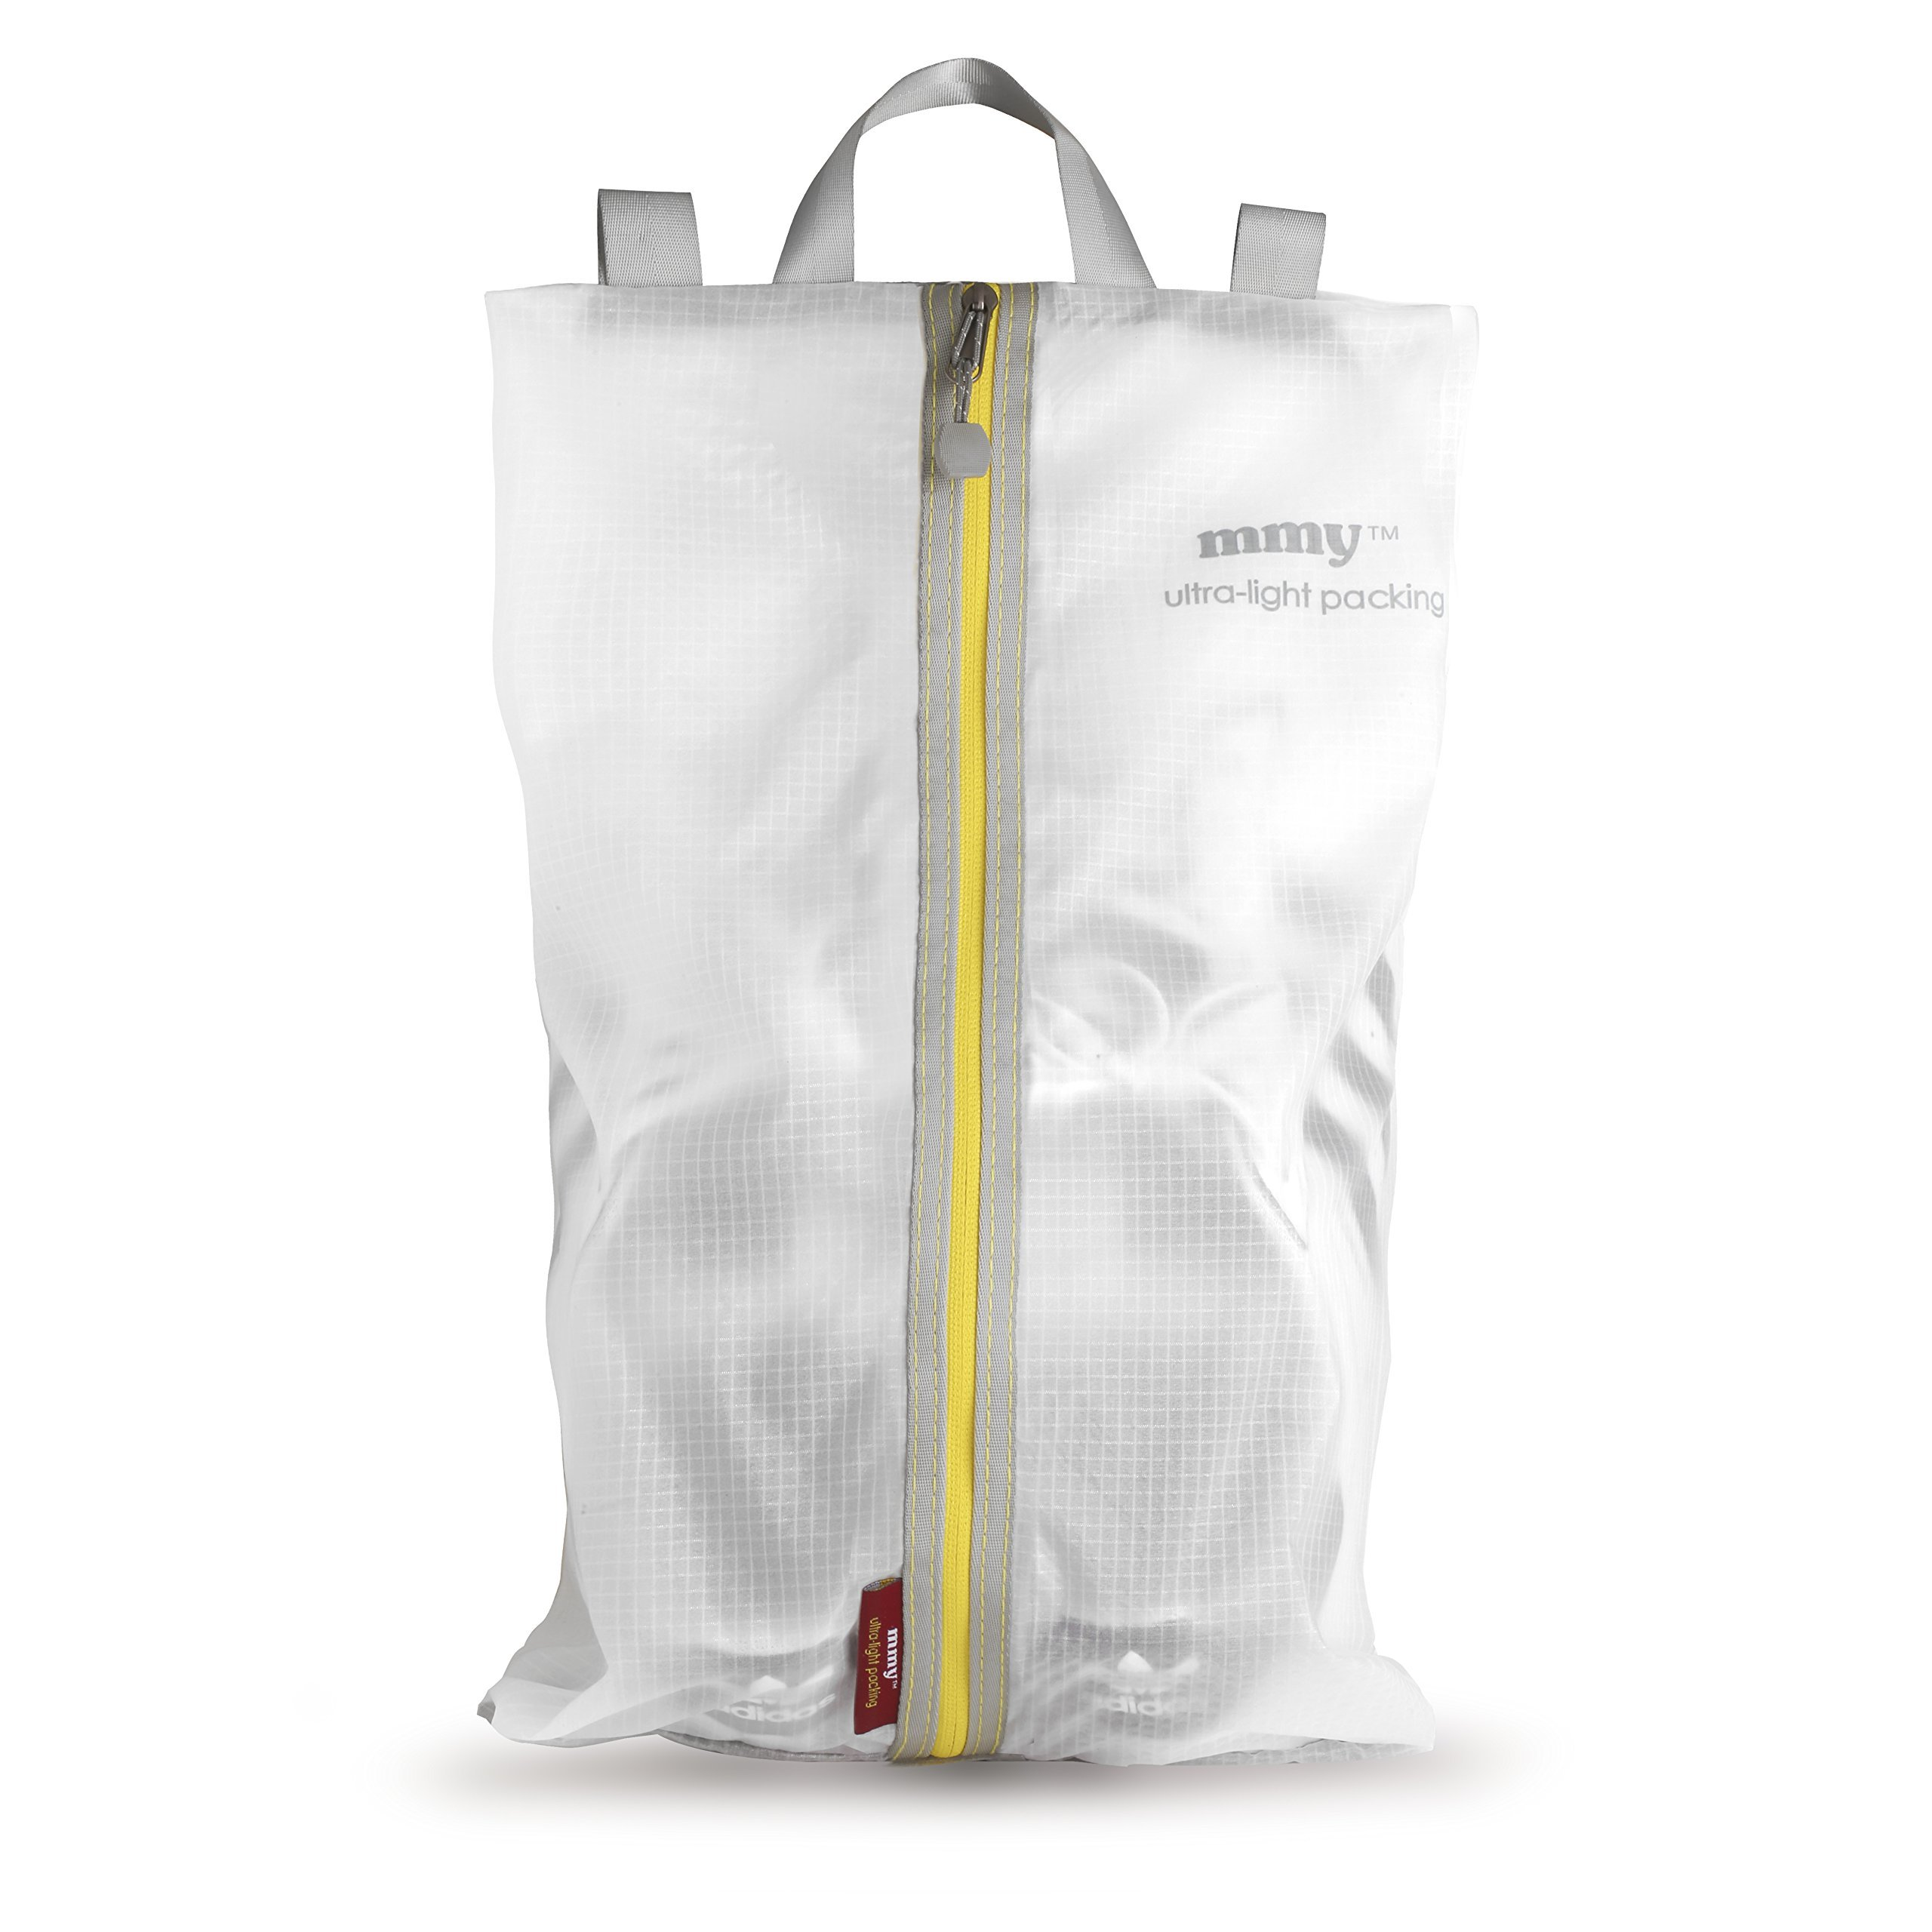 mmyTM Ultra Light Packing Shoe Sac, White/Lemon Yellow